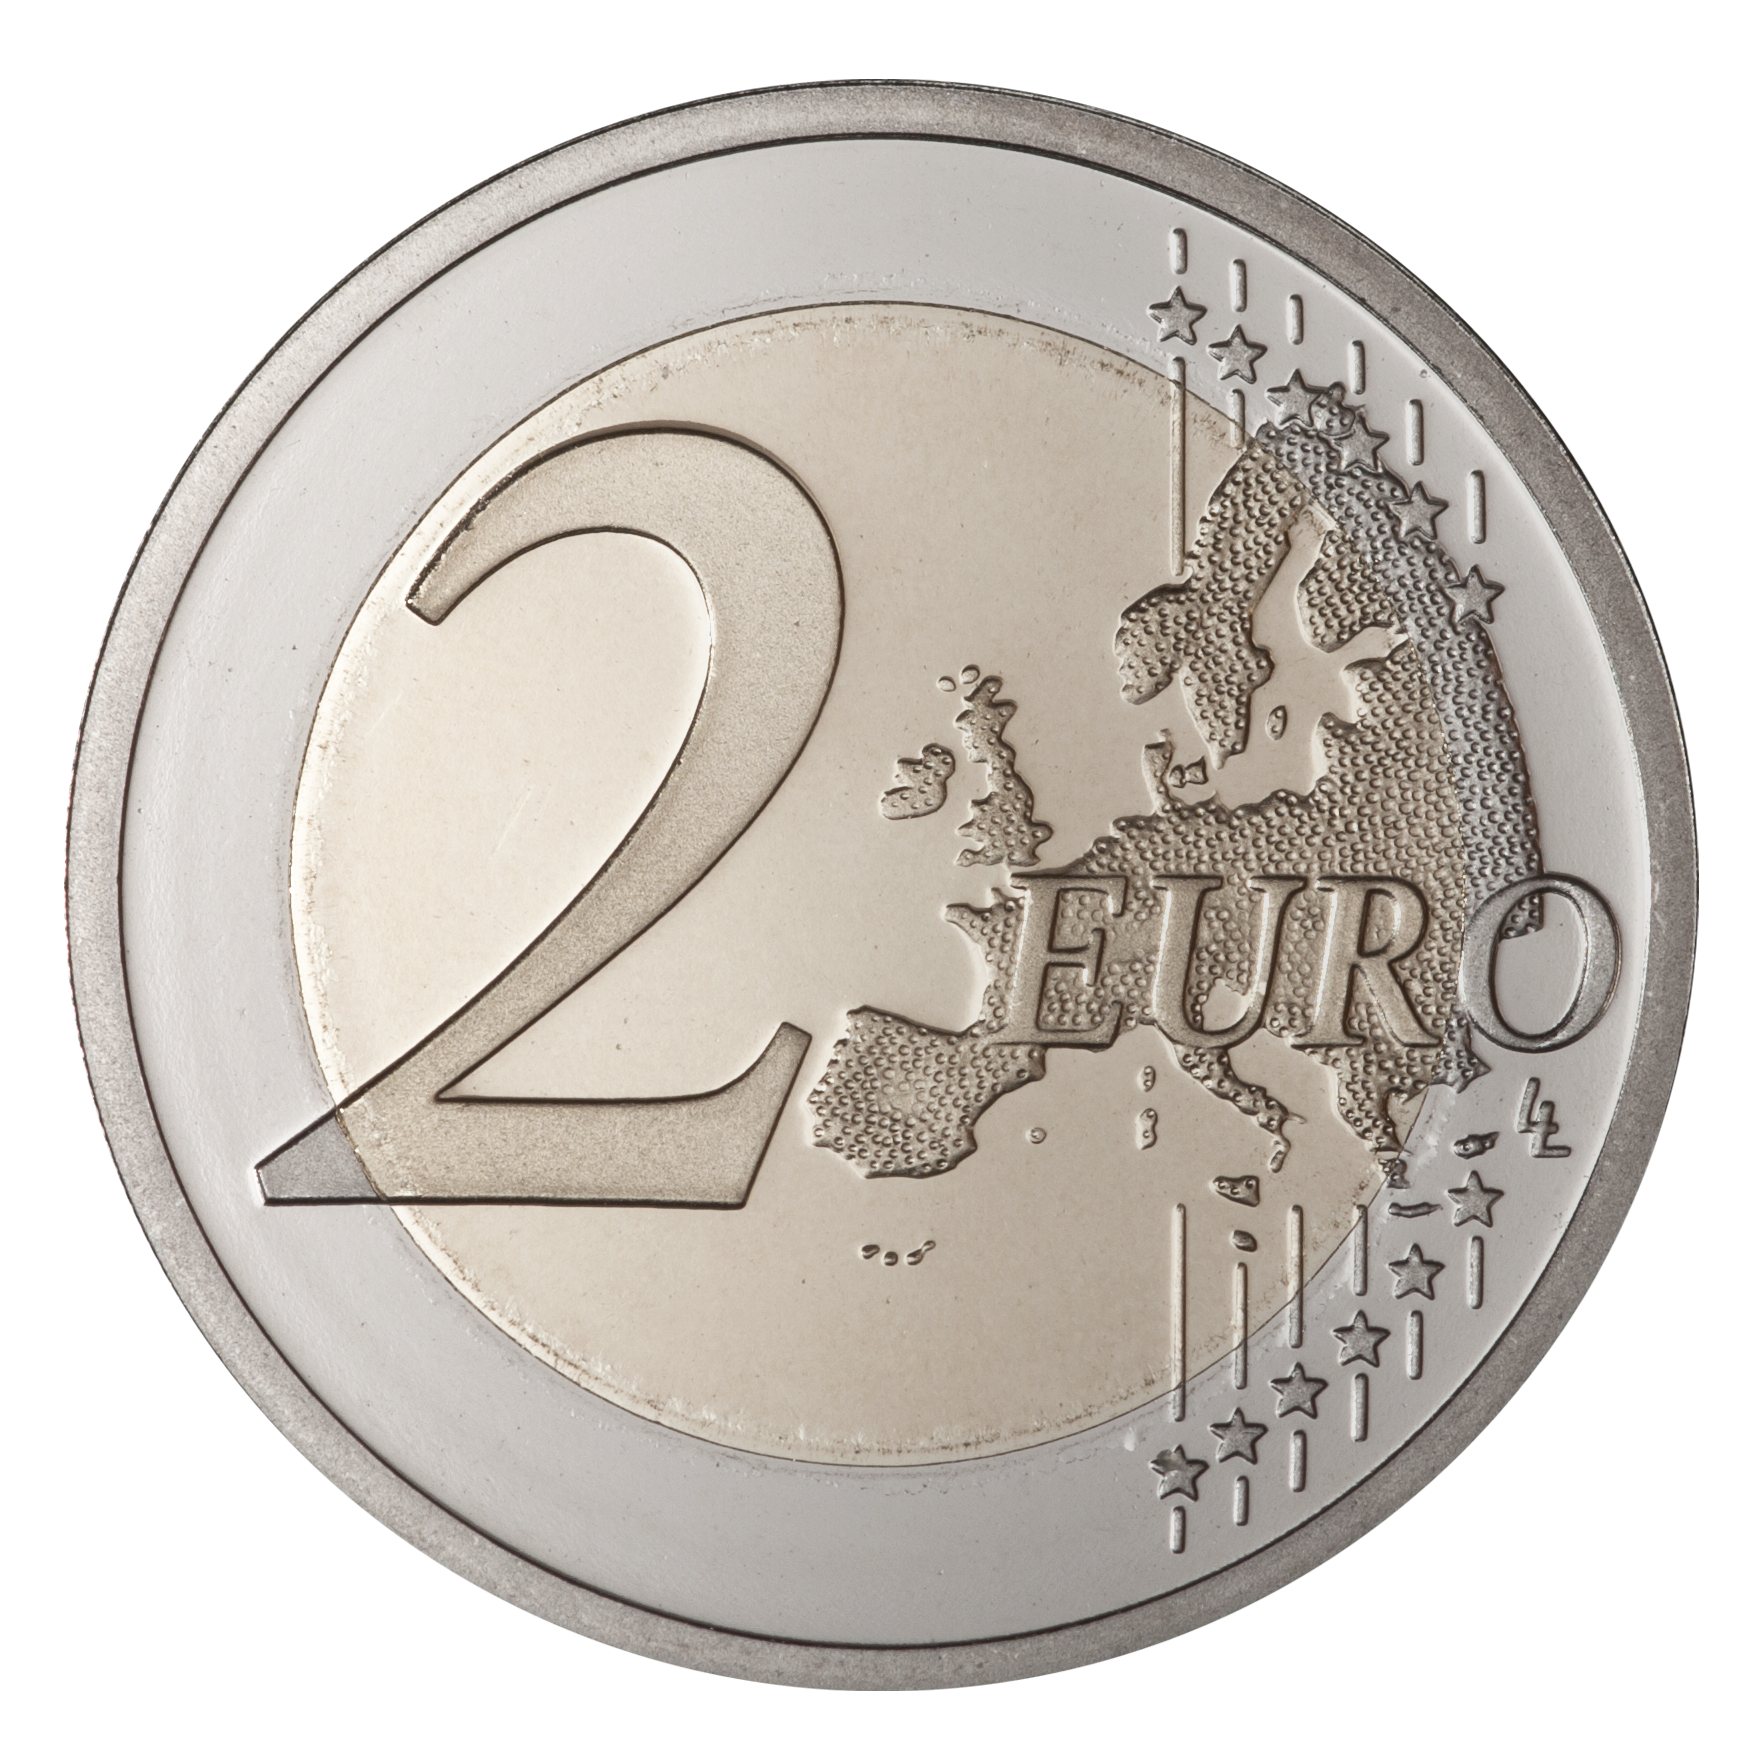 Coin 2 euro PNG image - Coin HD PNG